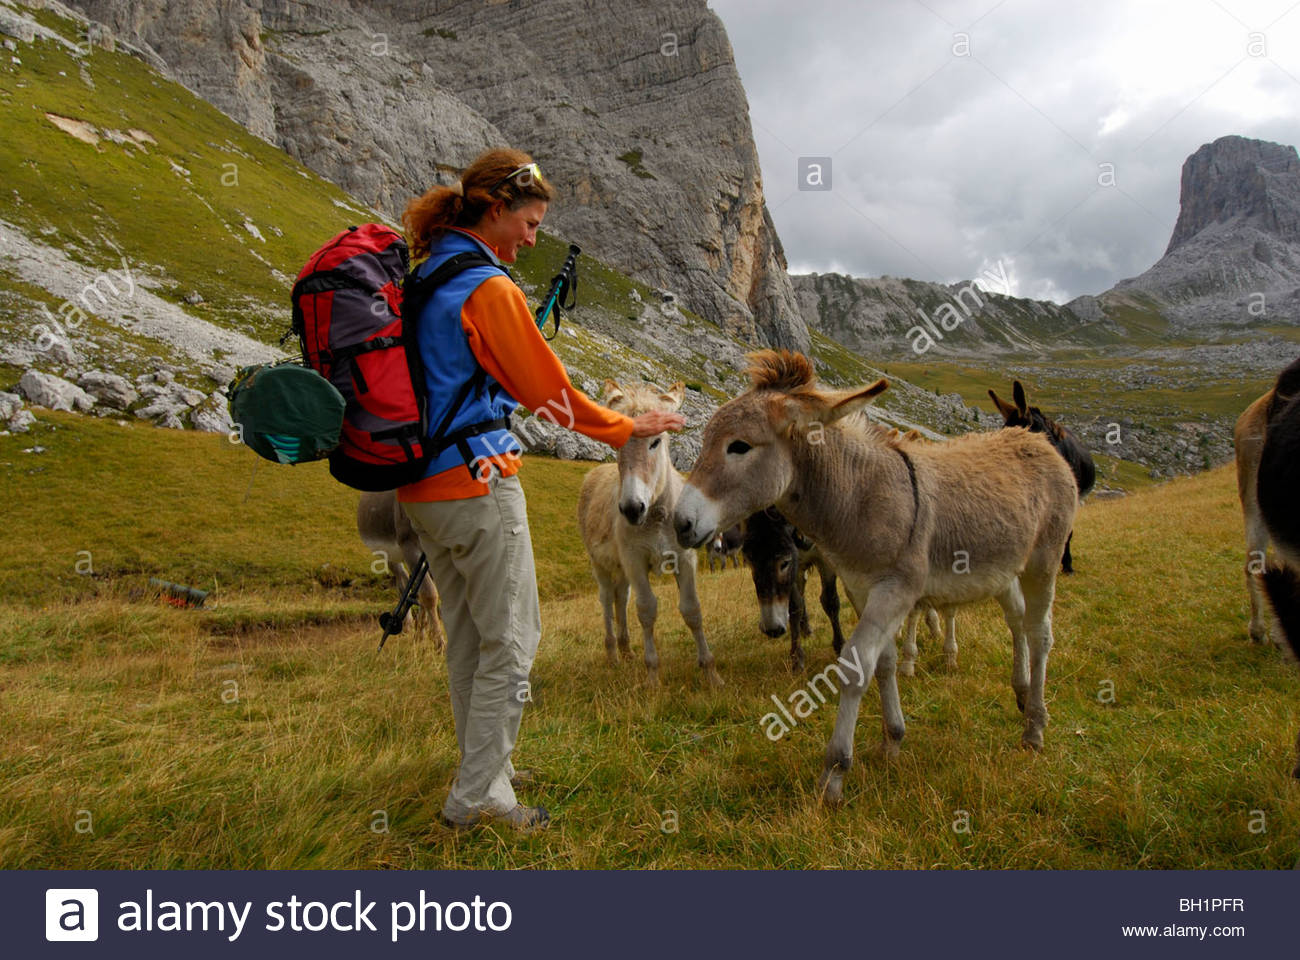 young woman with herd of donkeys, Forcella Giau, Alta Via delle Dolomiti No. 1, Dolomites, Cortina, Venezia, Italy - Stock Image